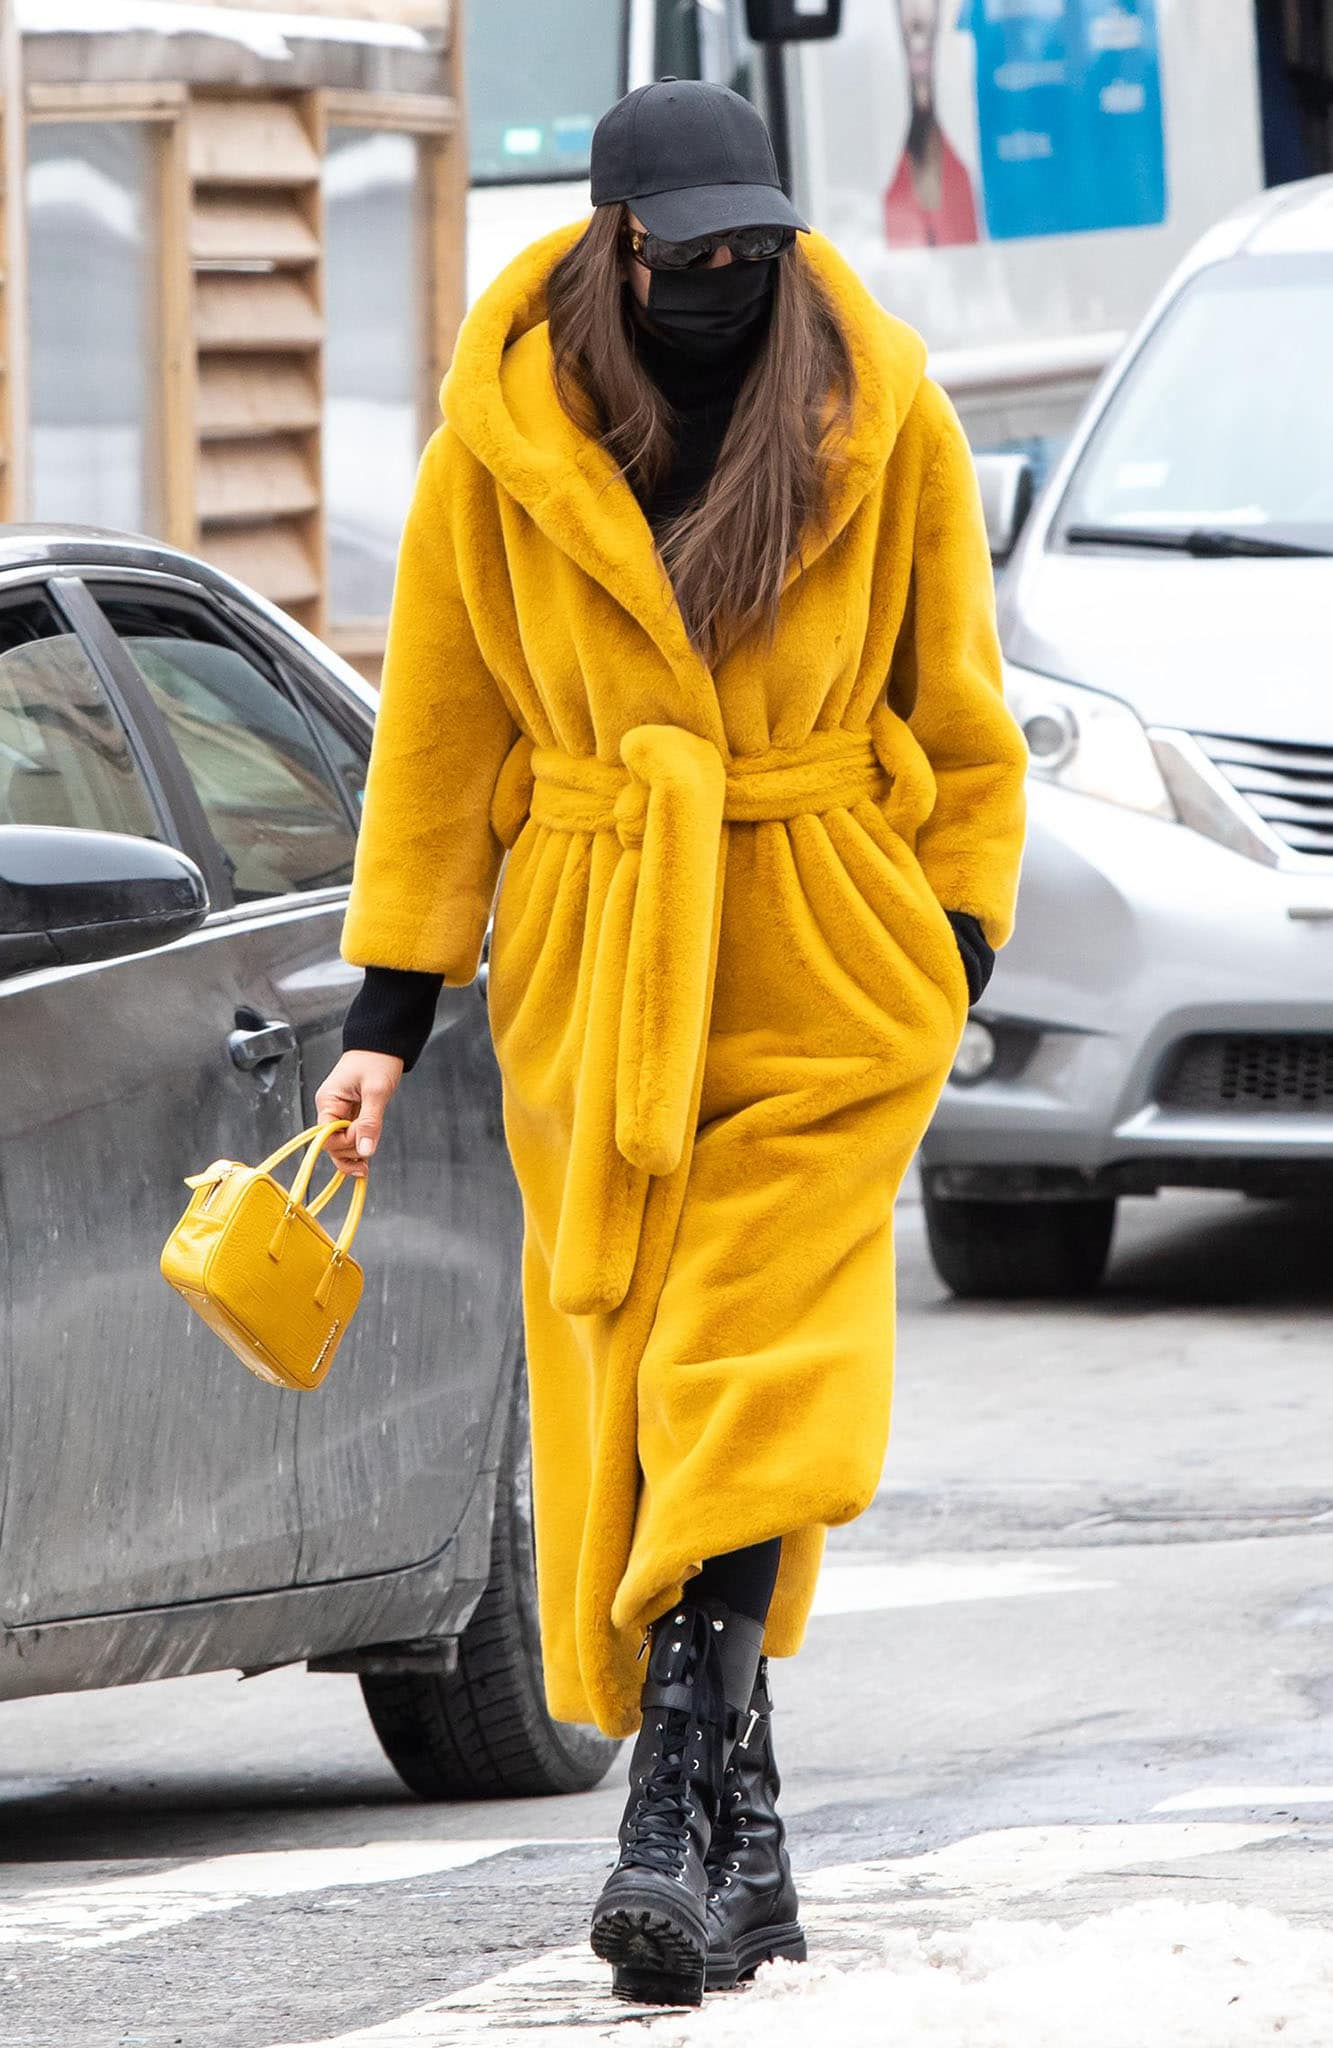 Irina Shayk explores her street style with bright-colored outfits